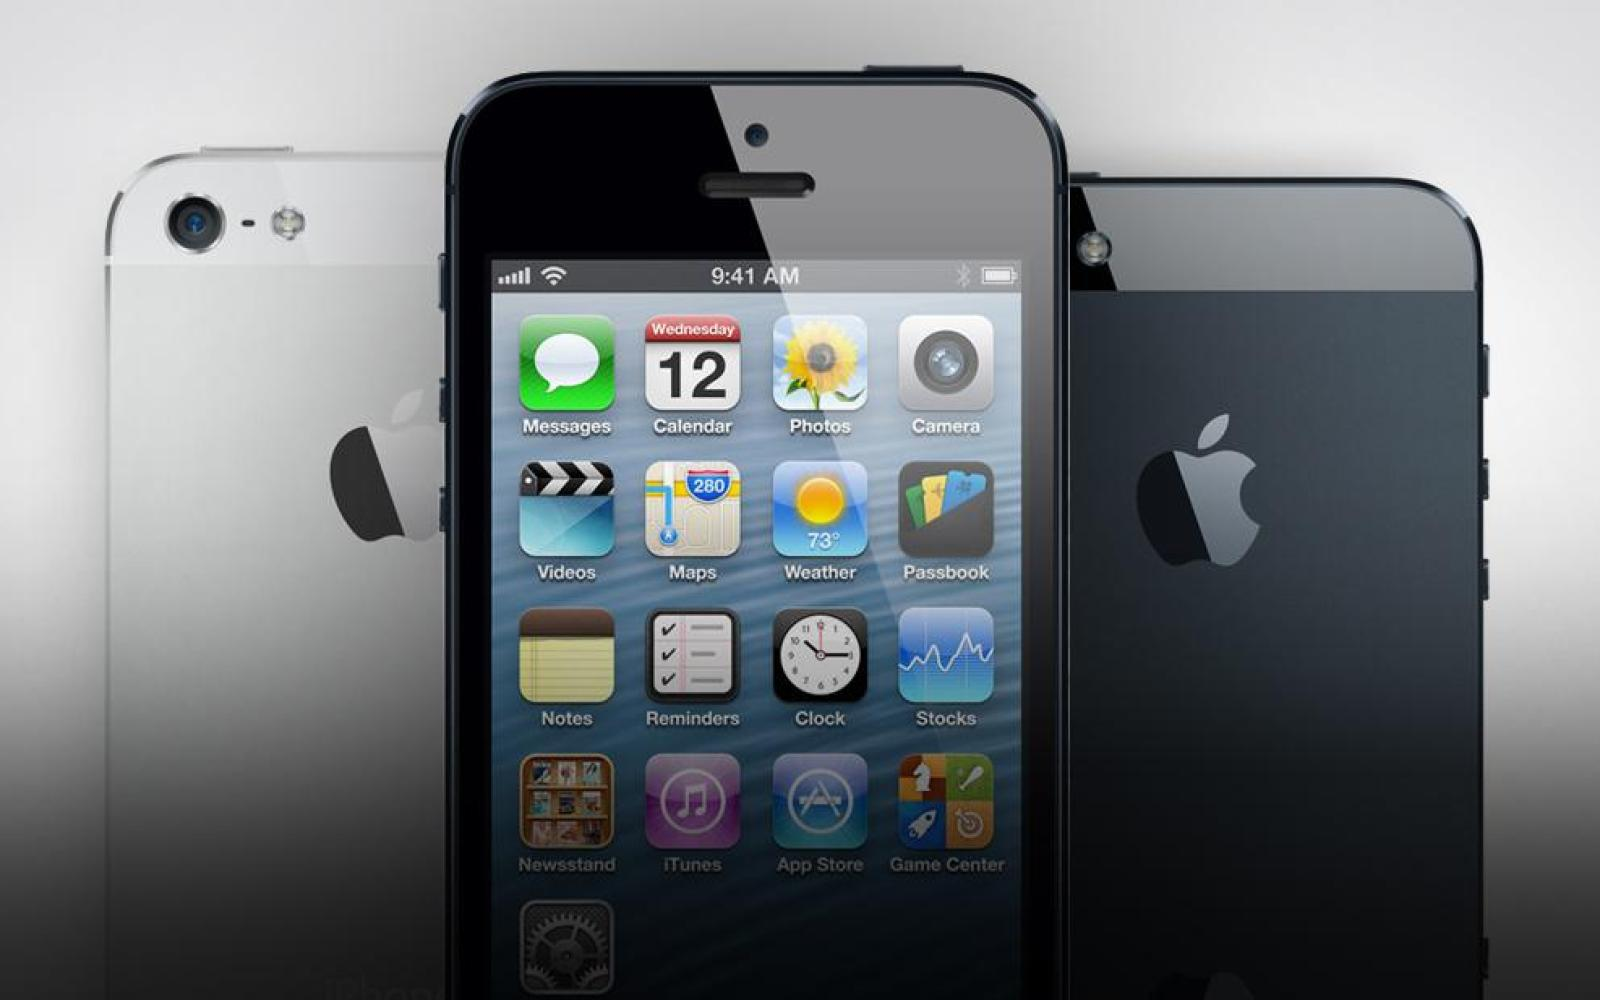 Smart finally beats dumb, but while smartphones rise Apple's share falls